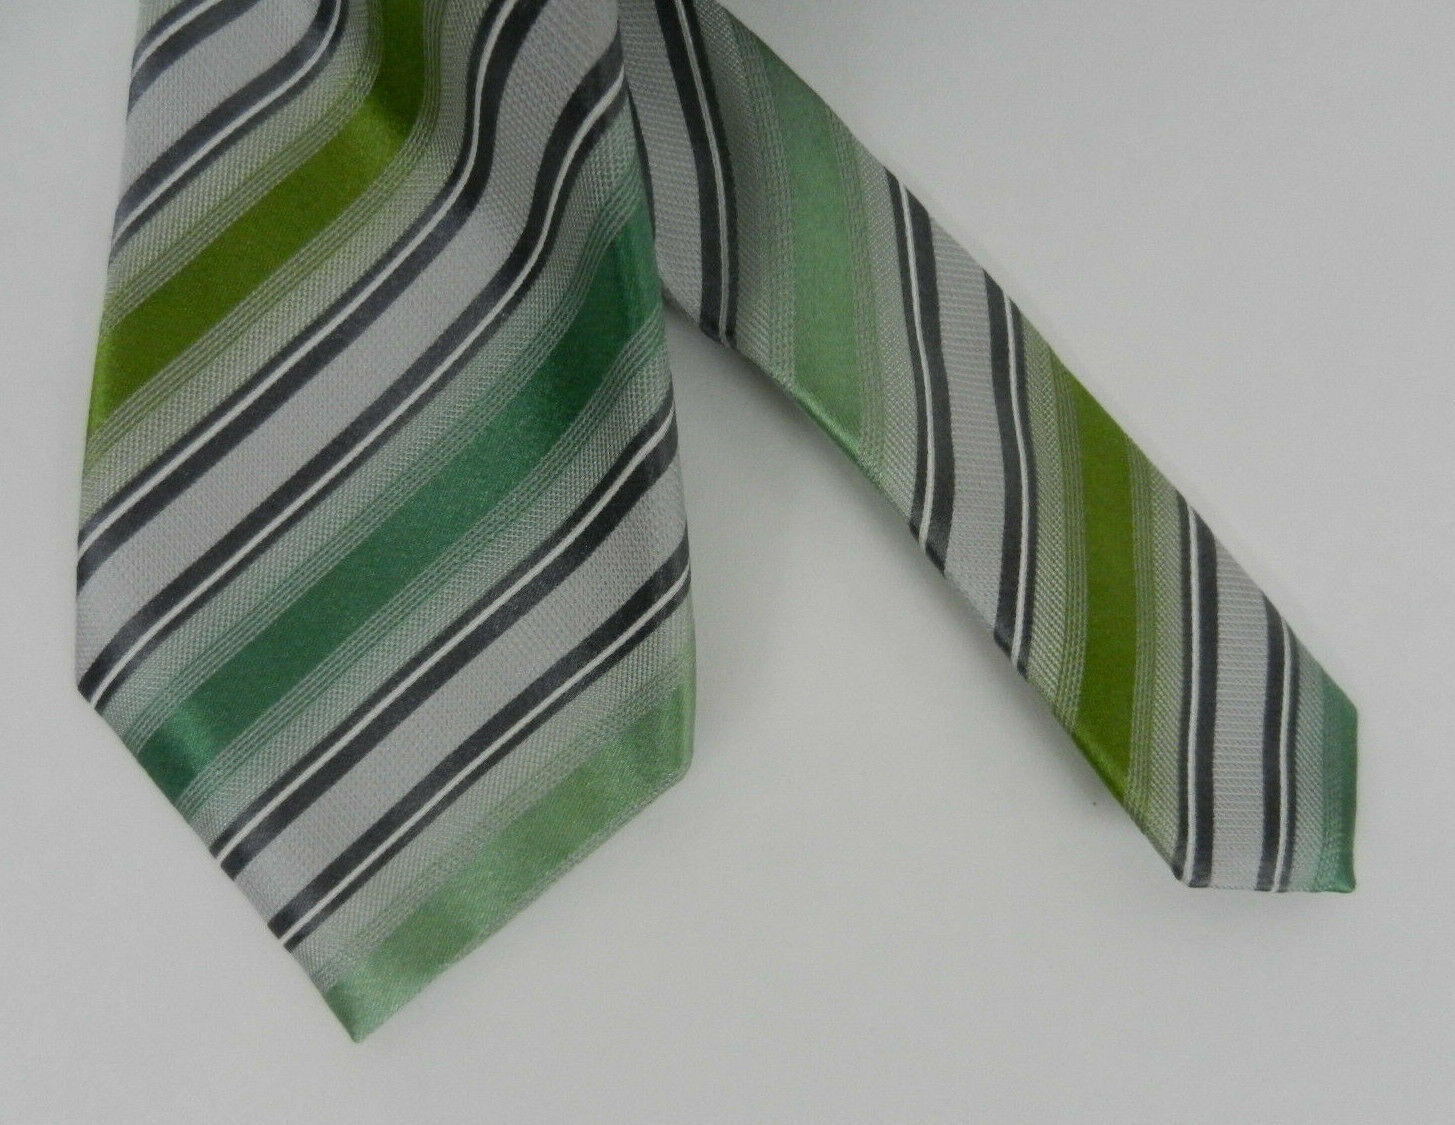 Kenneth Cole Reaction Mens Neck Tie Green Gray Black Diagonal Stripes 100% Silk